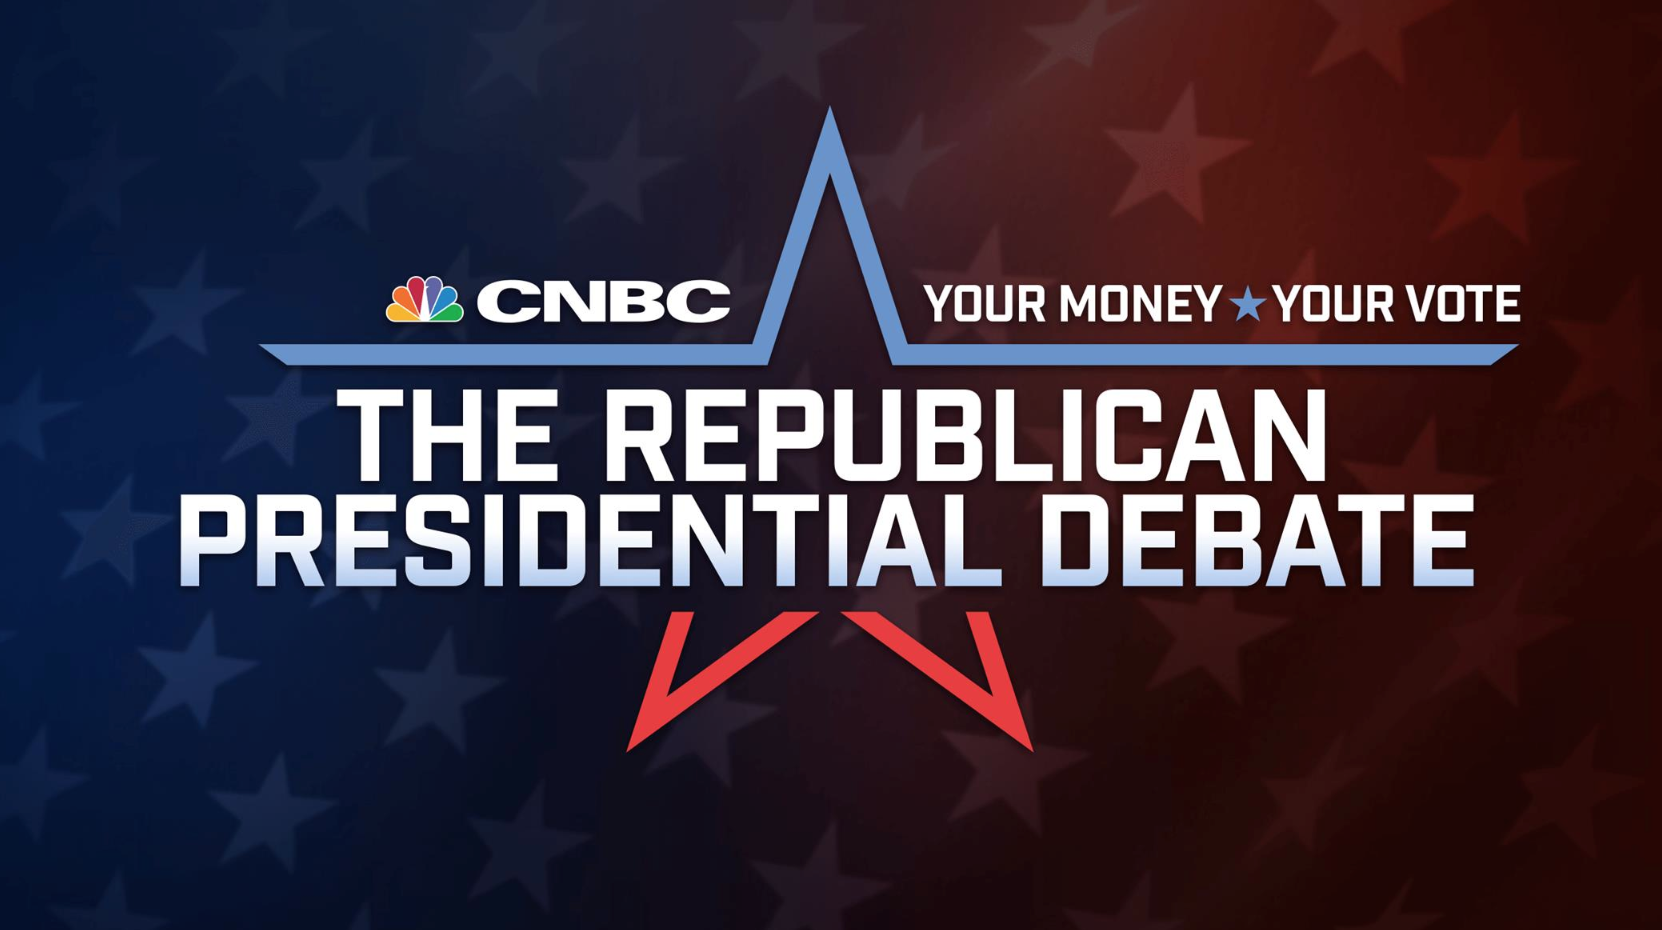 CNBC_GOP_Debate.png